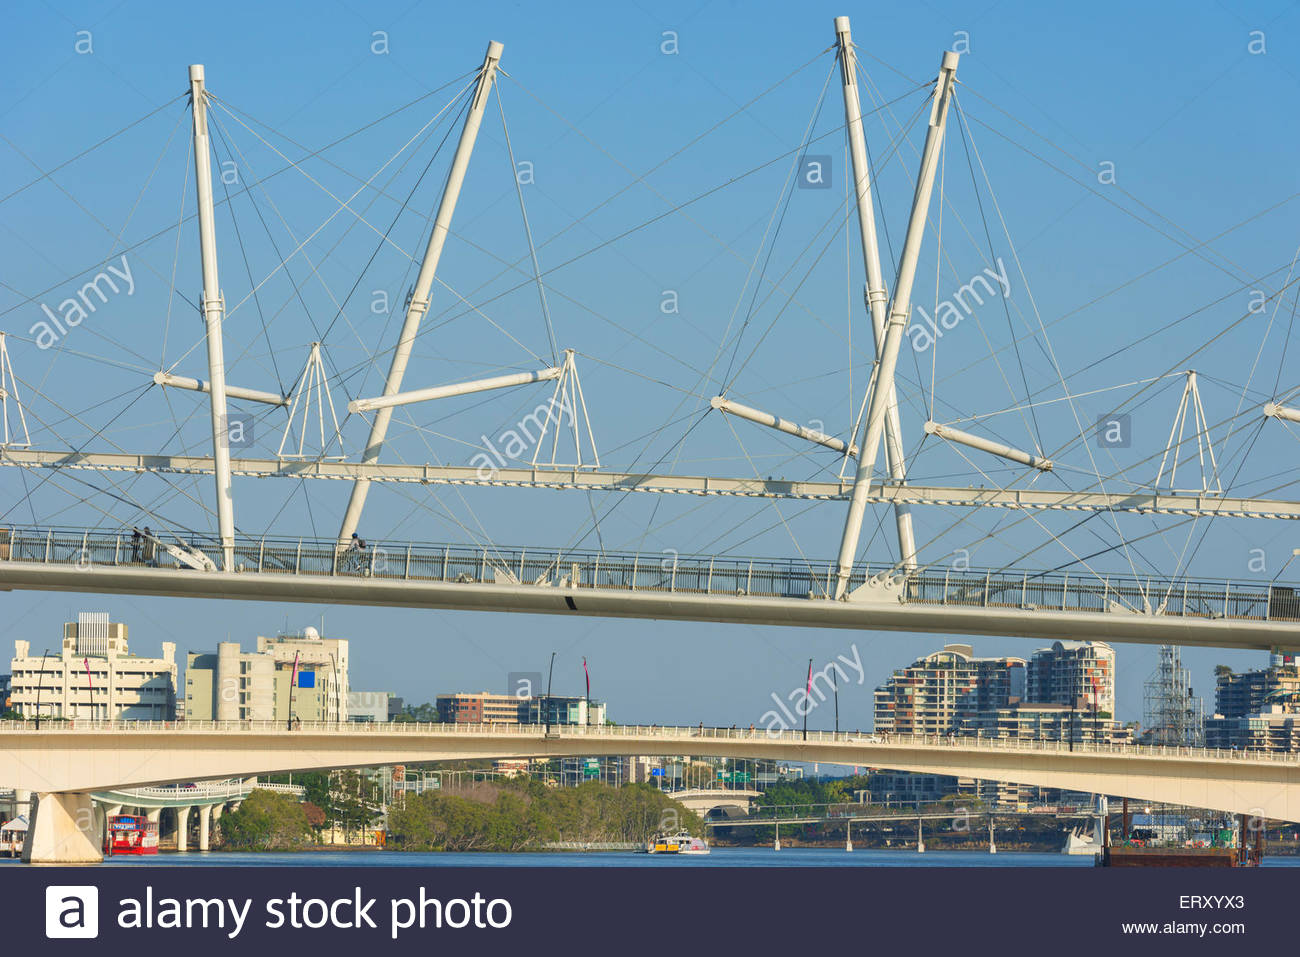 Modern Kurilpa bridge, footbridge crossing the Brisbane River, Brisbane, Queensland Australia - Stock Image